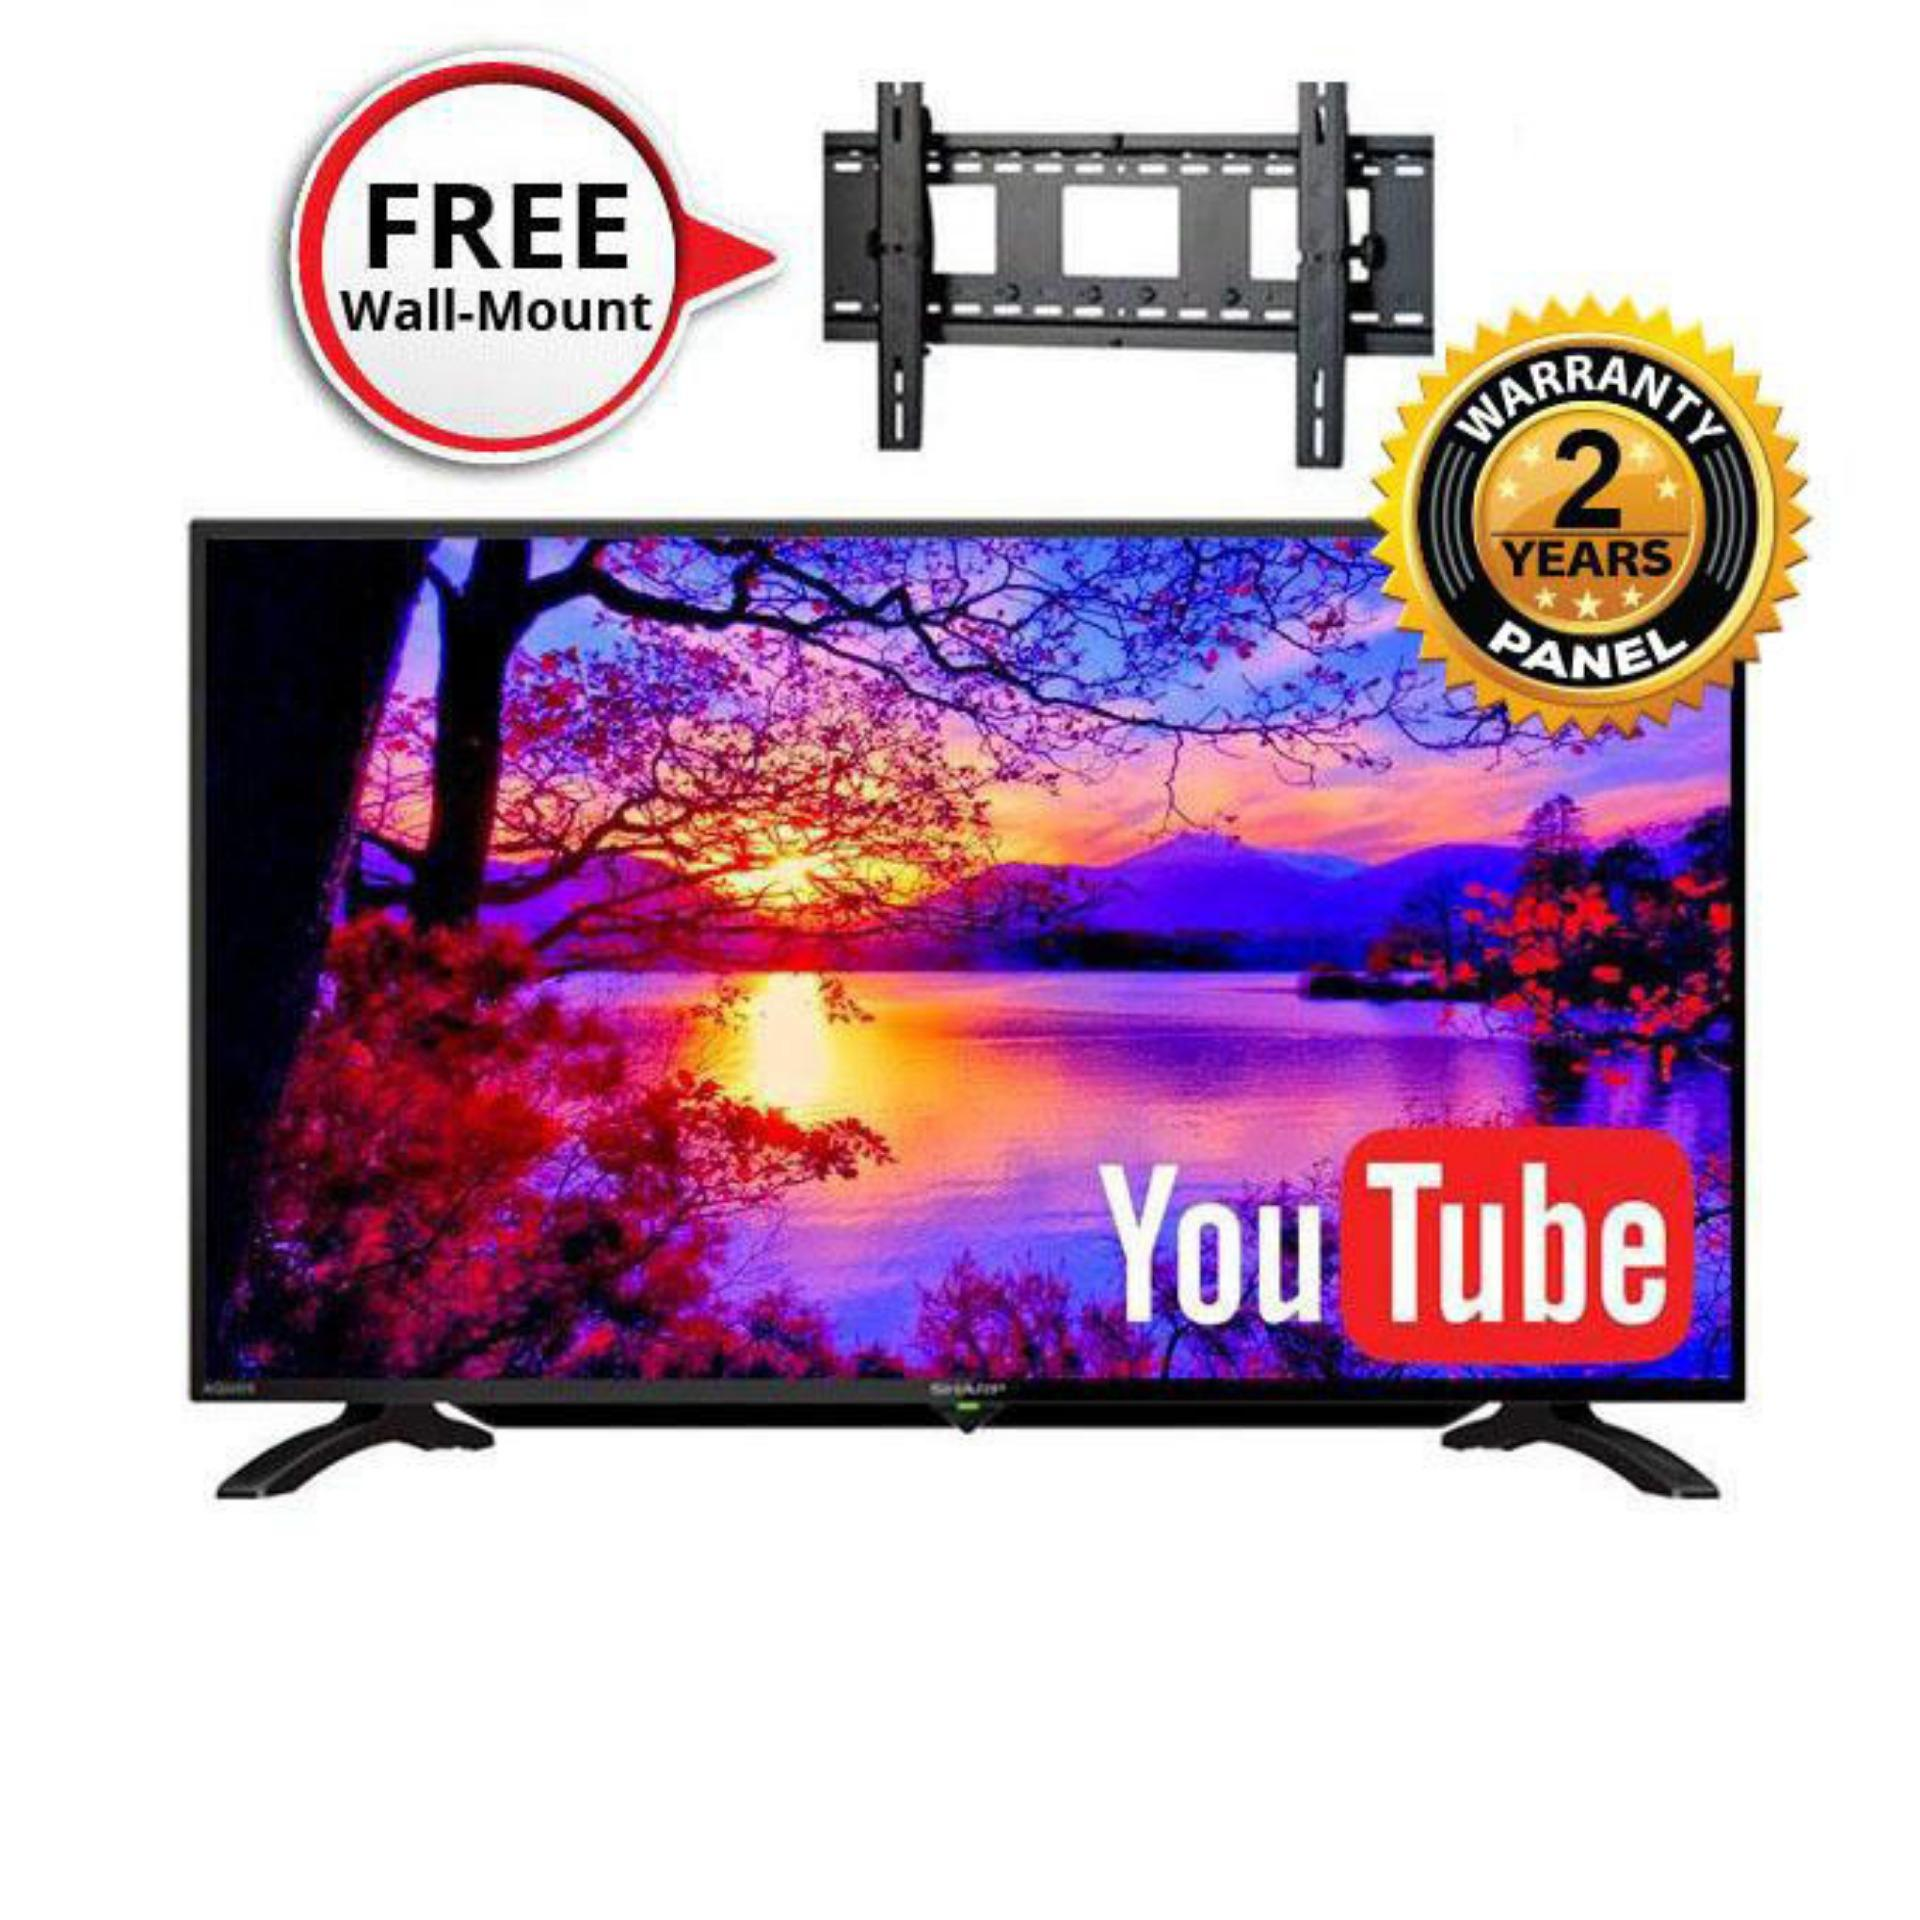 Smart Tv Price In Bangladesh Buy Televisions Online At Daraz Internet 40 Lc 40le380x Led Black